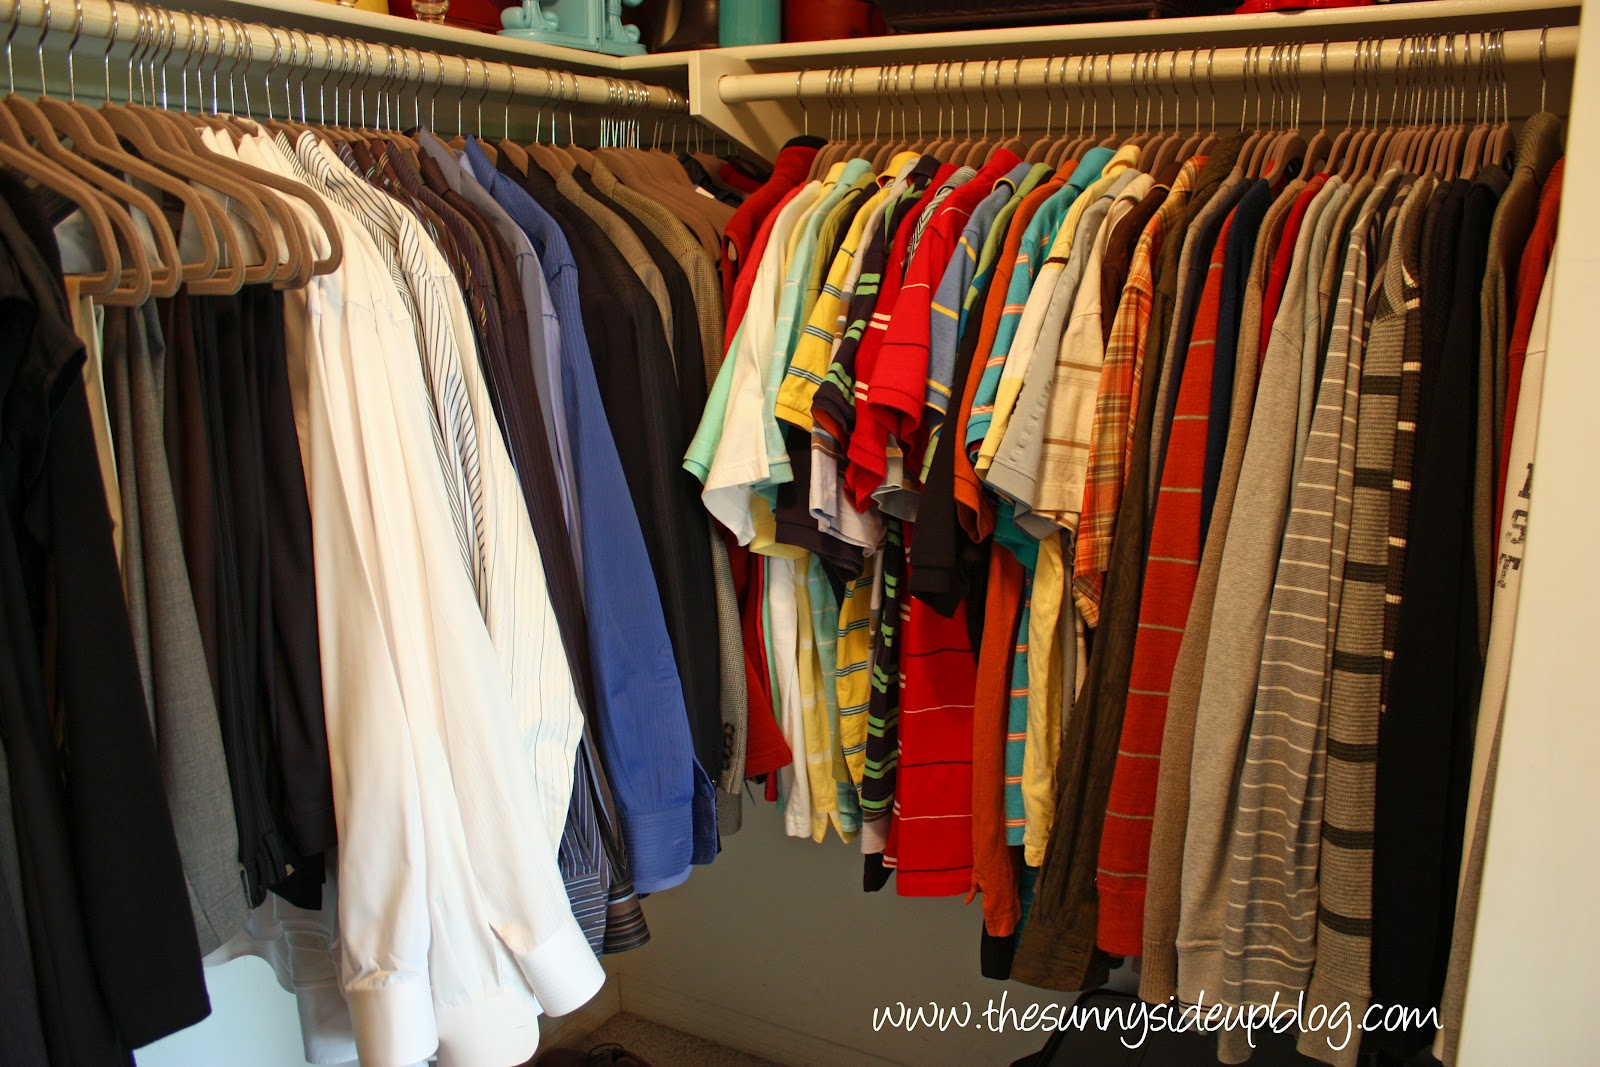 Kenny S Clothes Got A Makeover Too I Organized All Of His Slacks Dress Shirts Collared And Long Sleeved Together